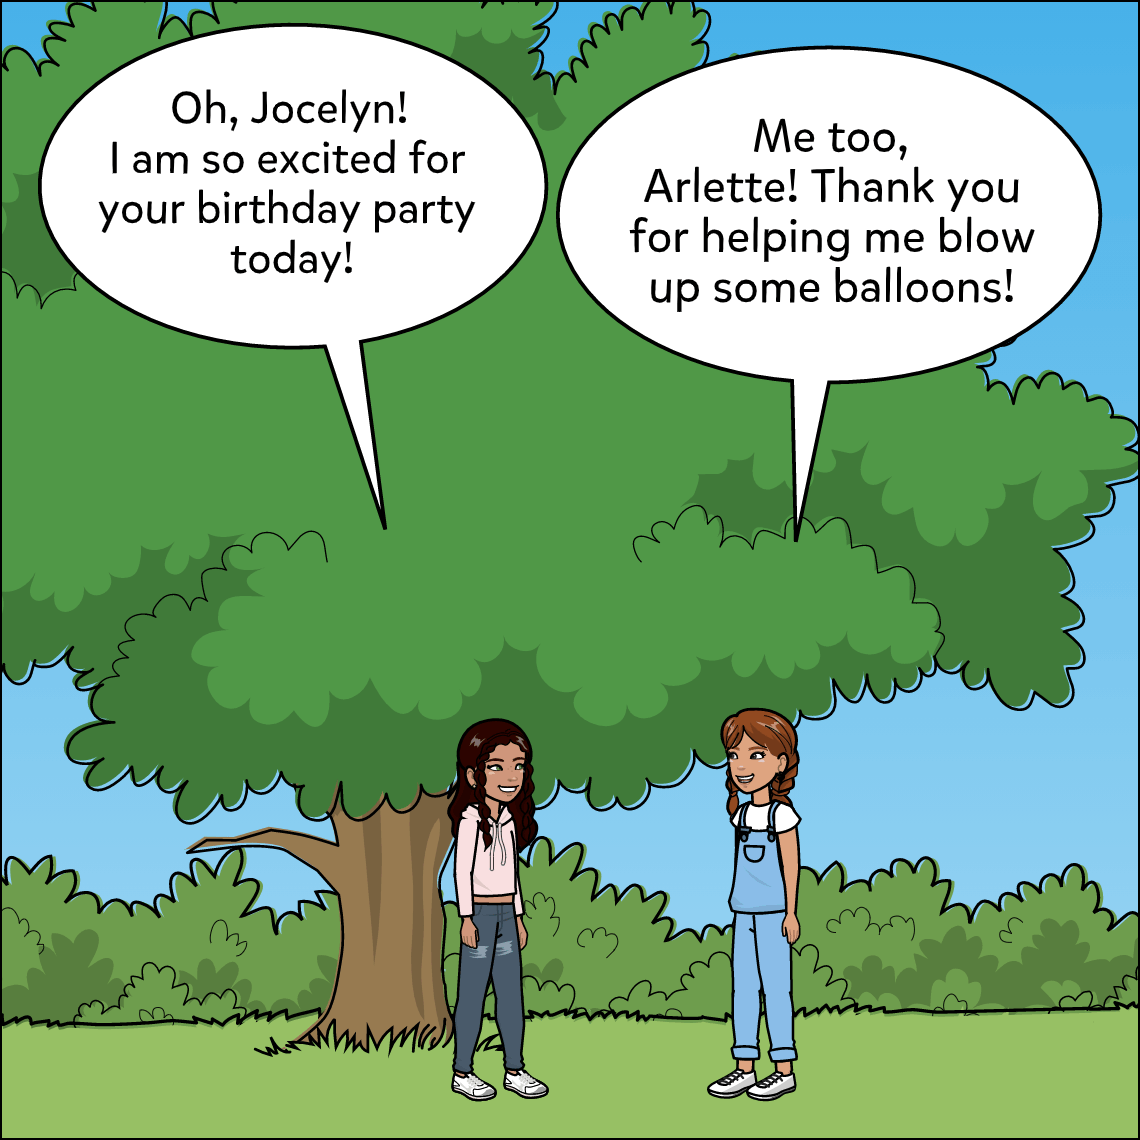 party balloons subtraction word problem lesson exemplar comic panel 1